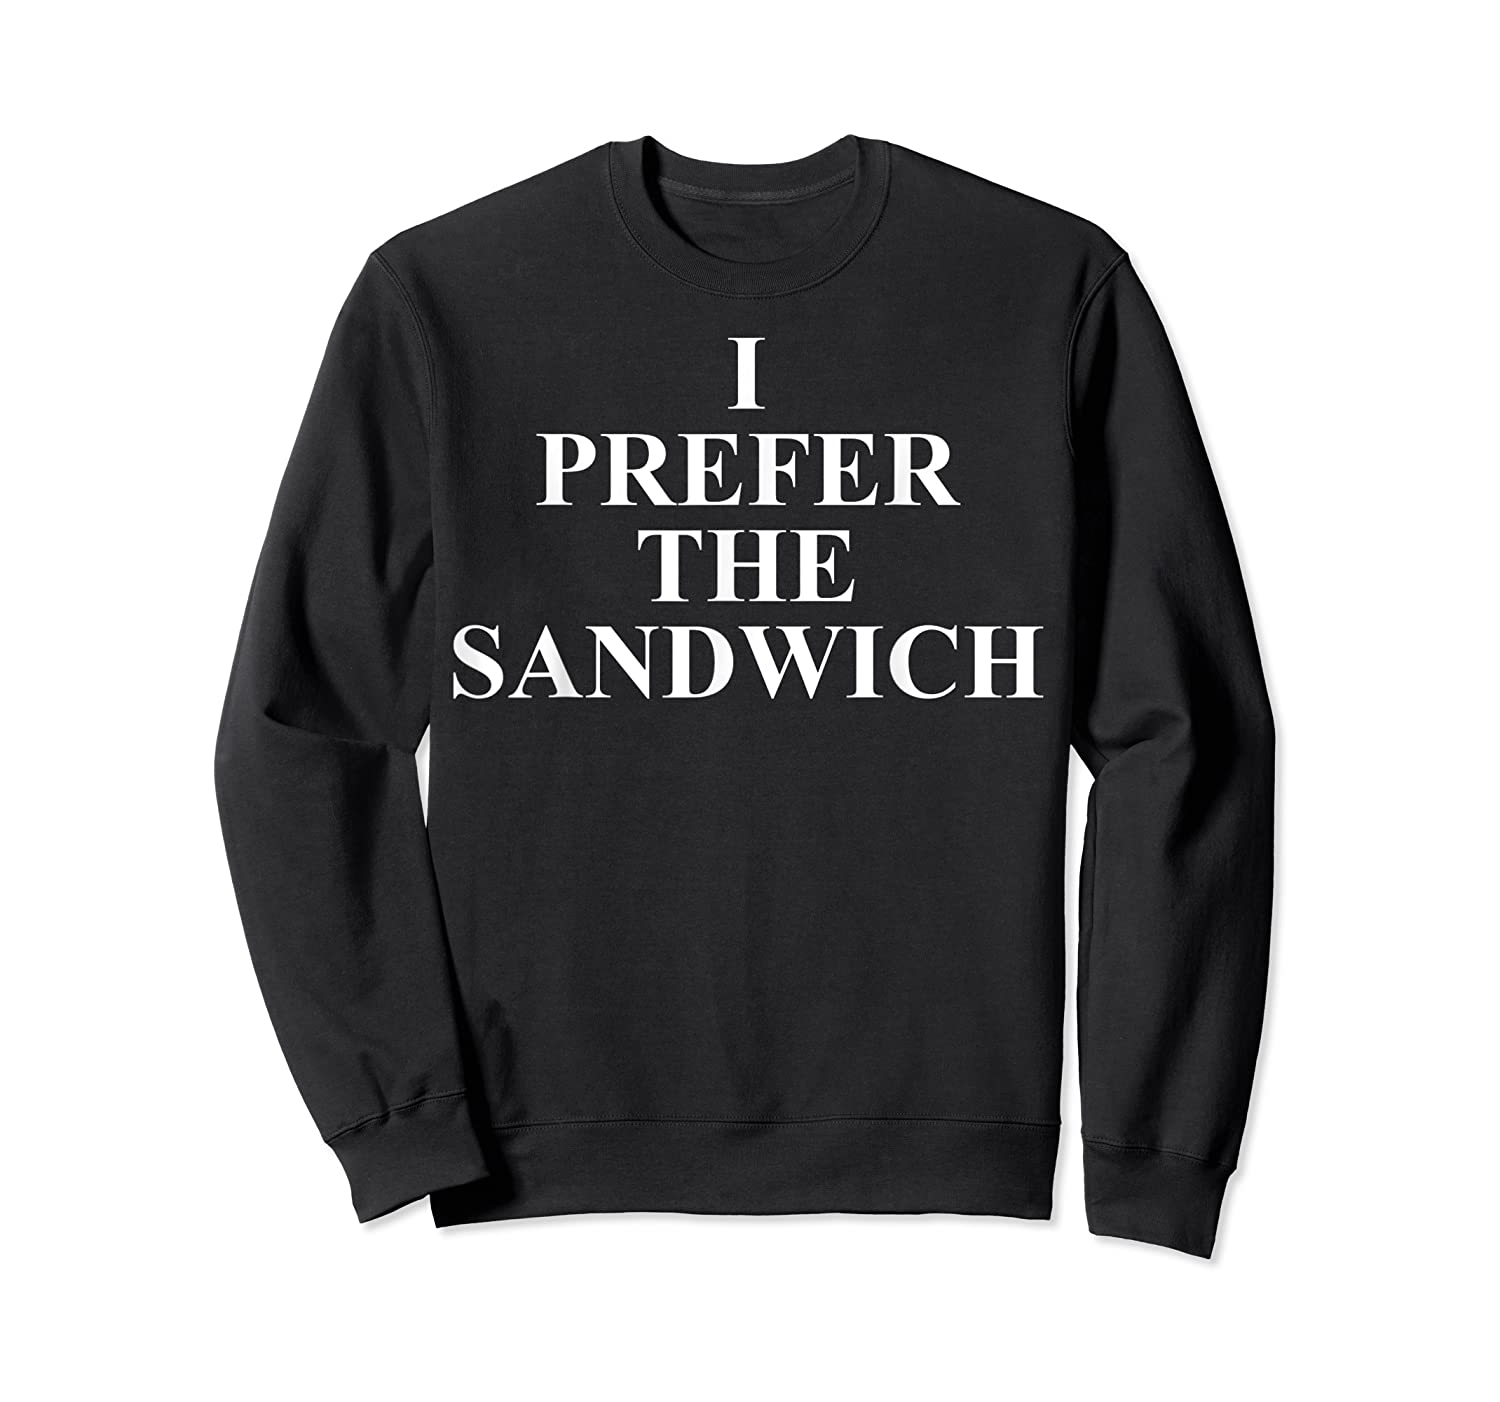 Sandwich T Shirt Funny Gifts For Sandwich Lovers Top Tees Crewneck Sweater